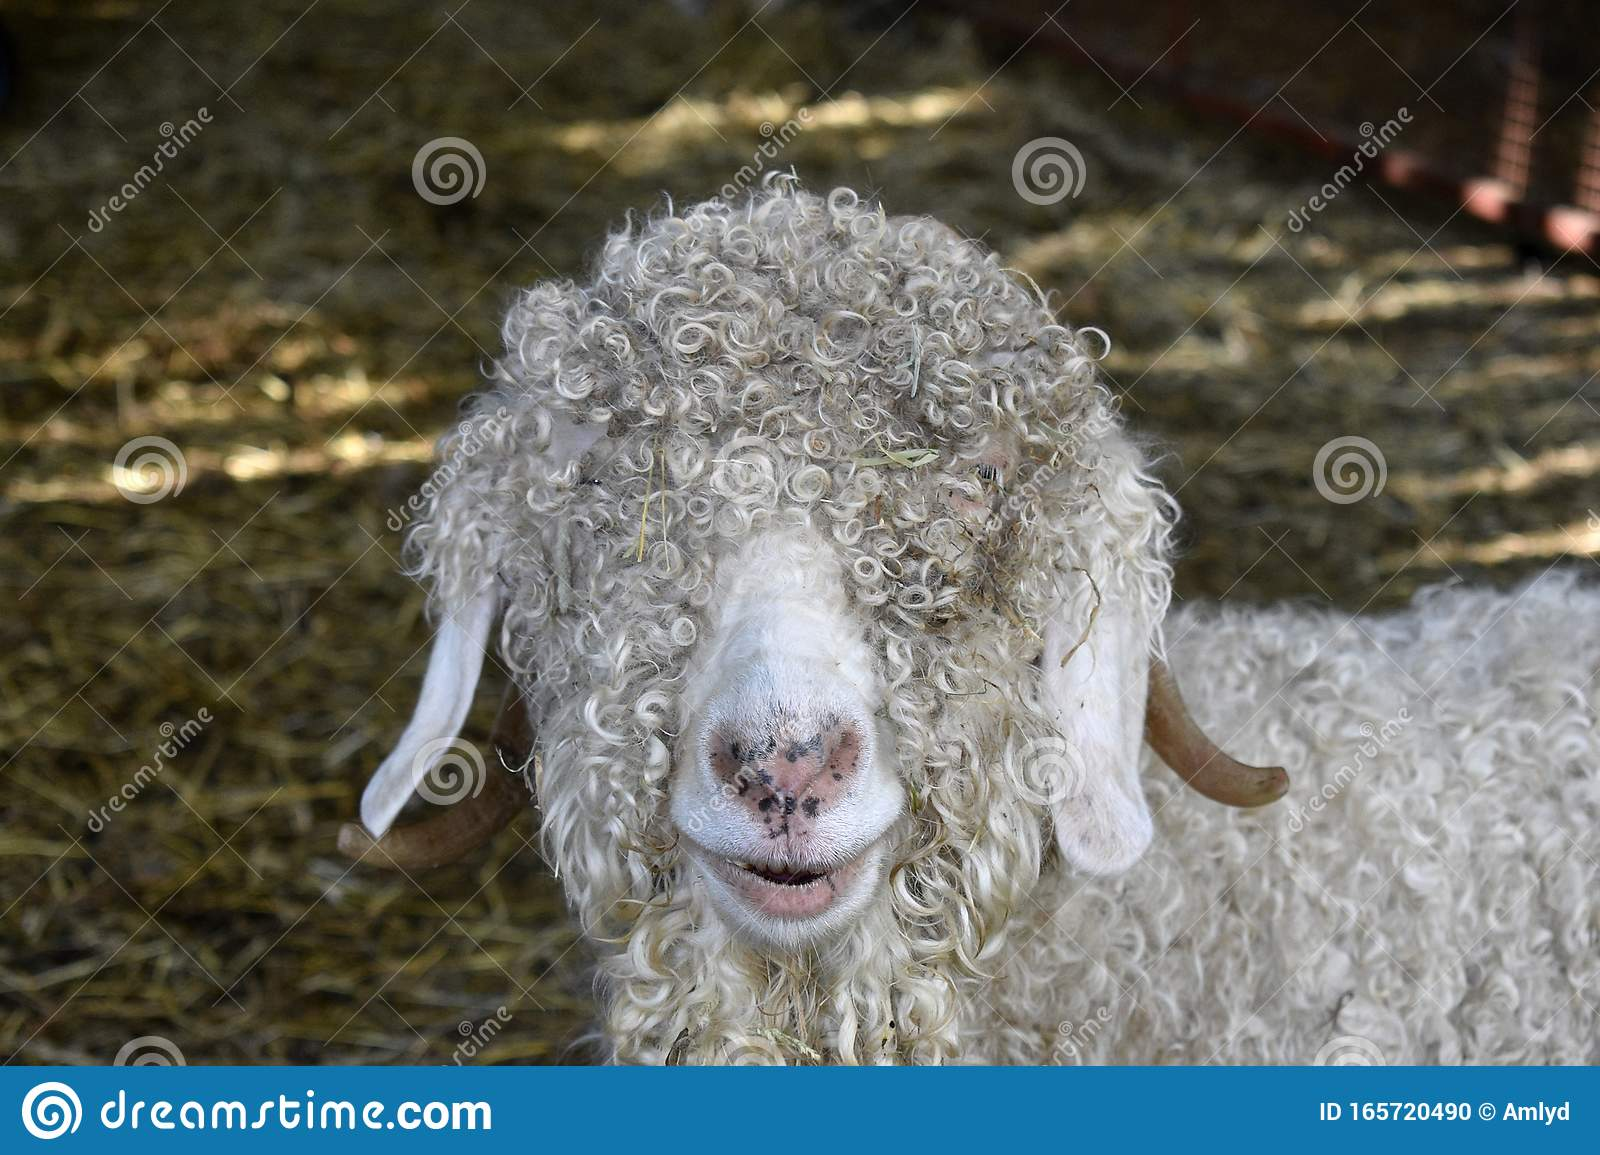 17 Angora Goat High Res Illustrations - Getty Images